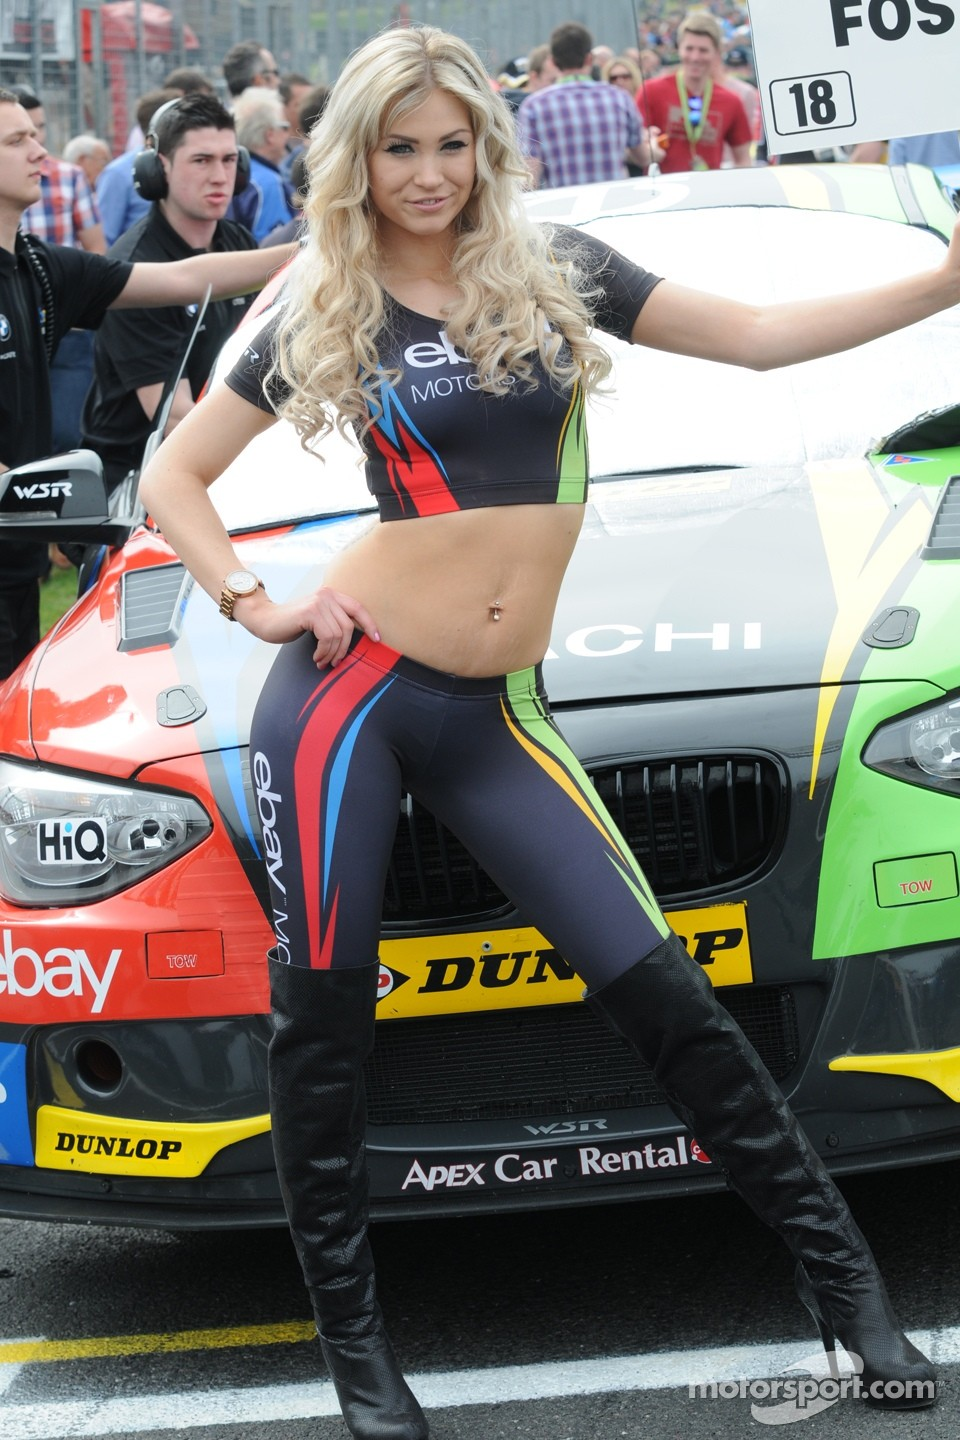 At hot nascar races girls